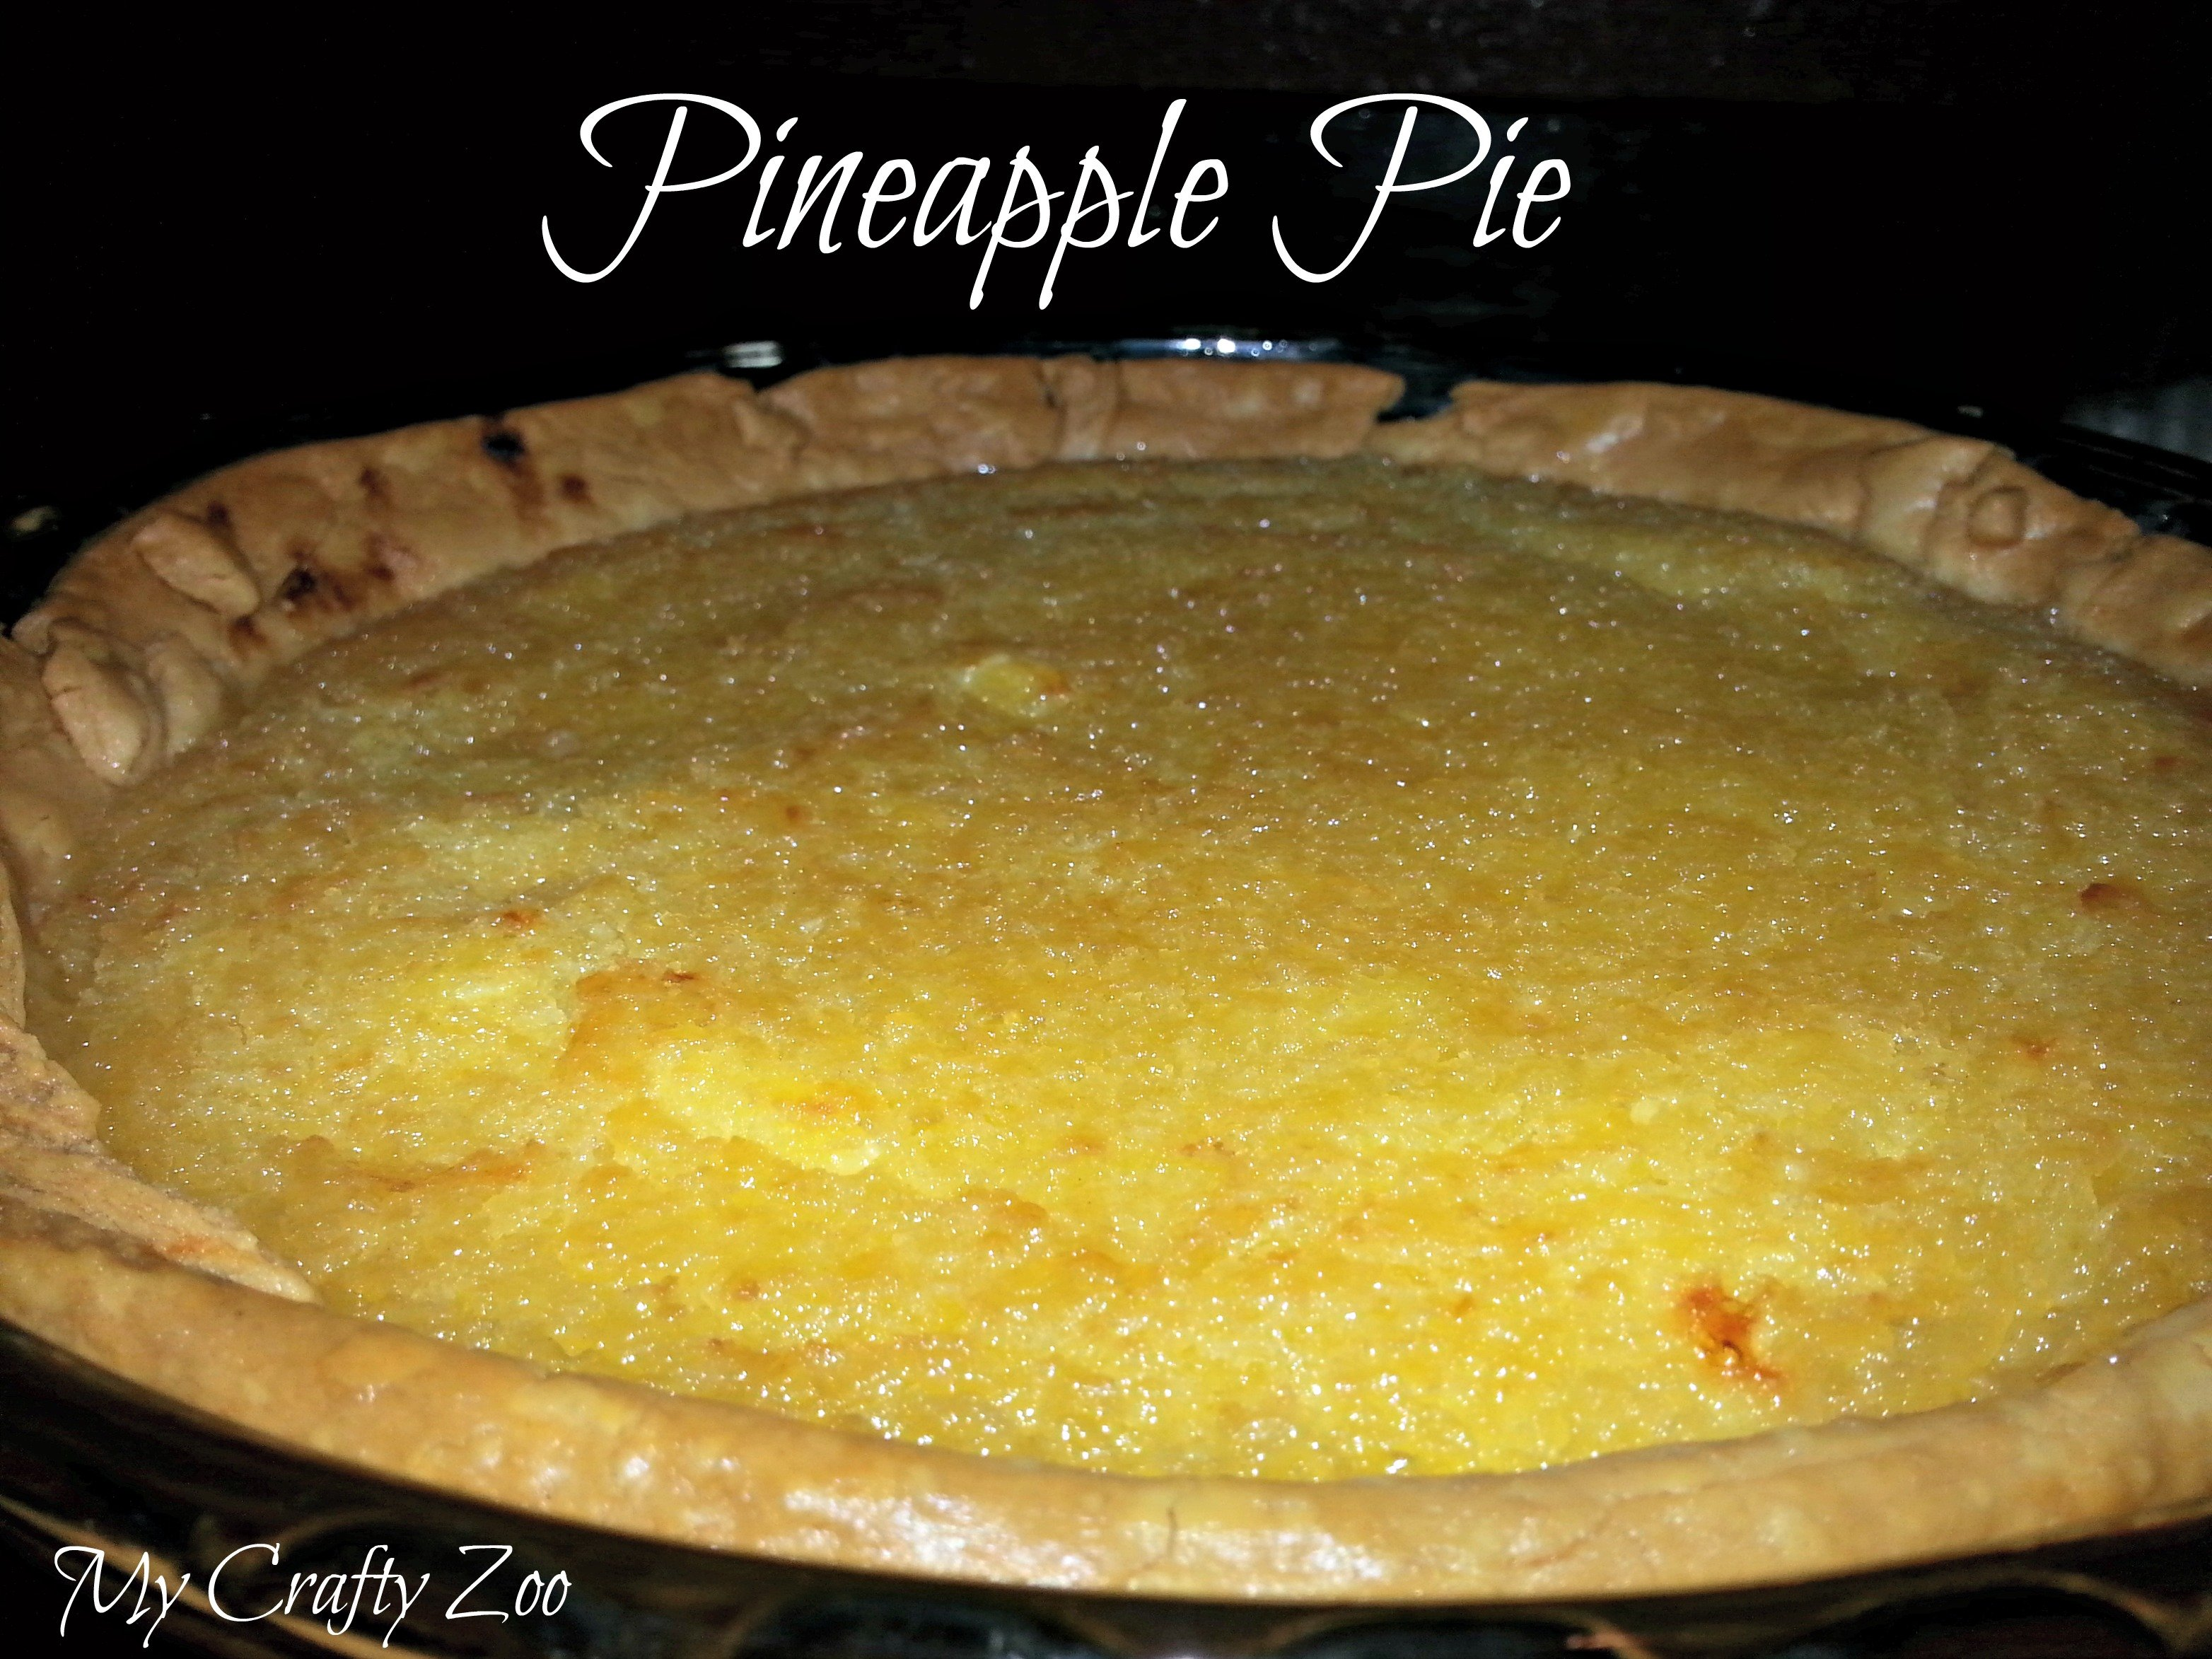 Pineapple Pie